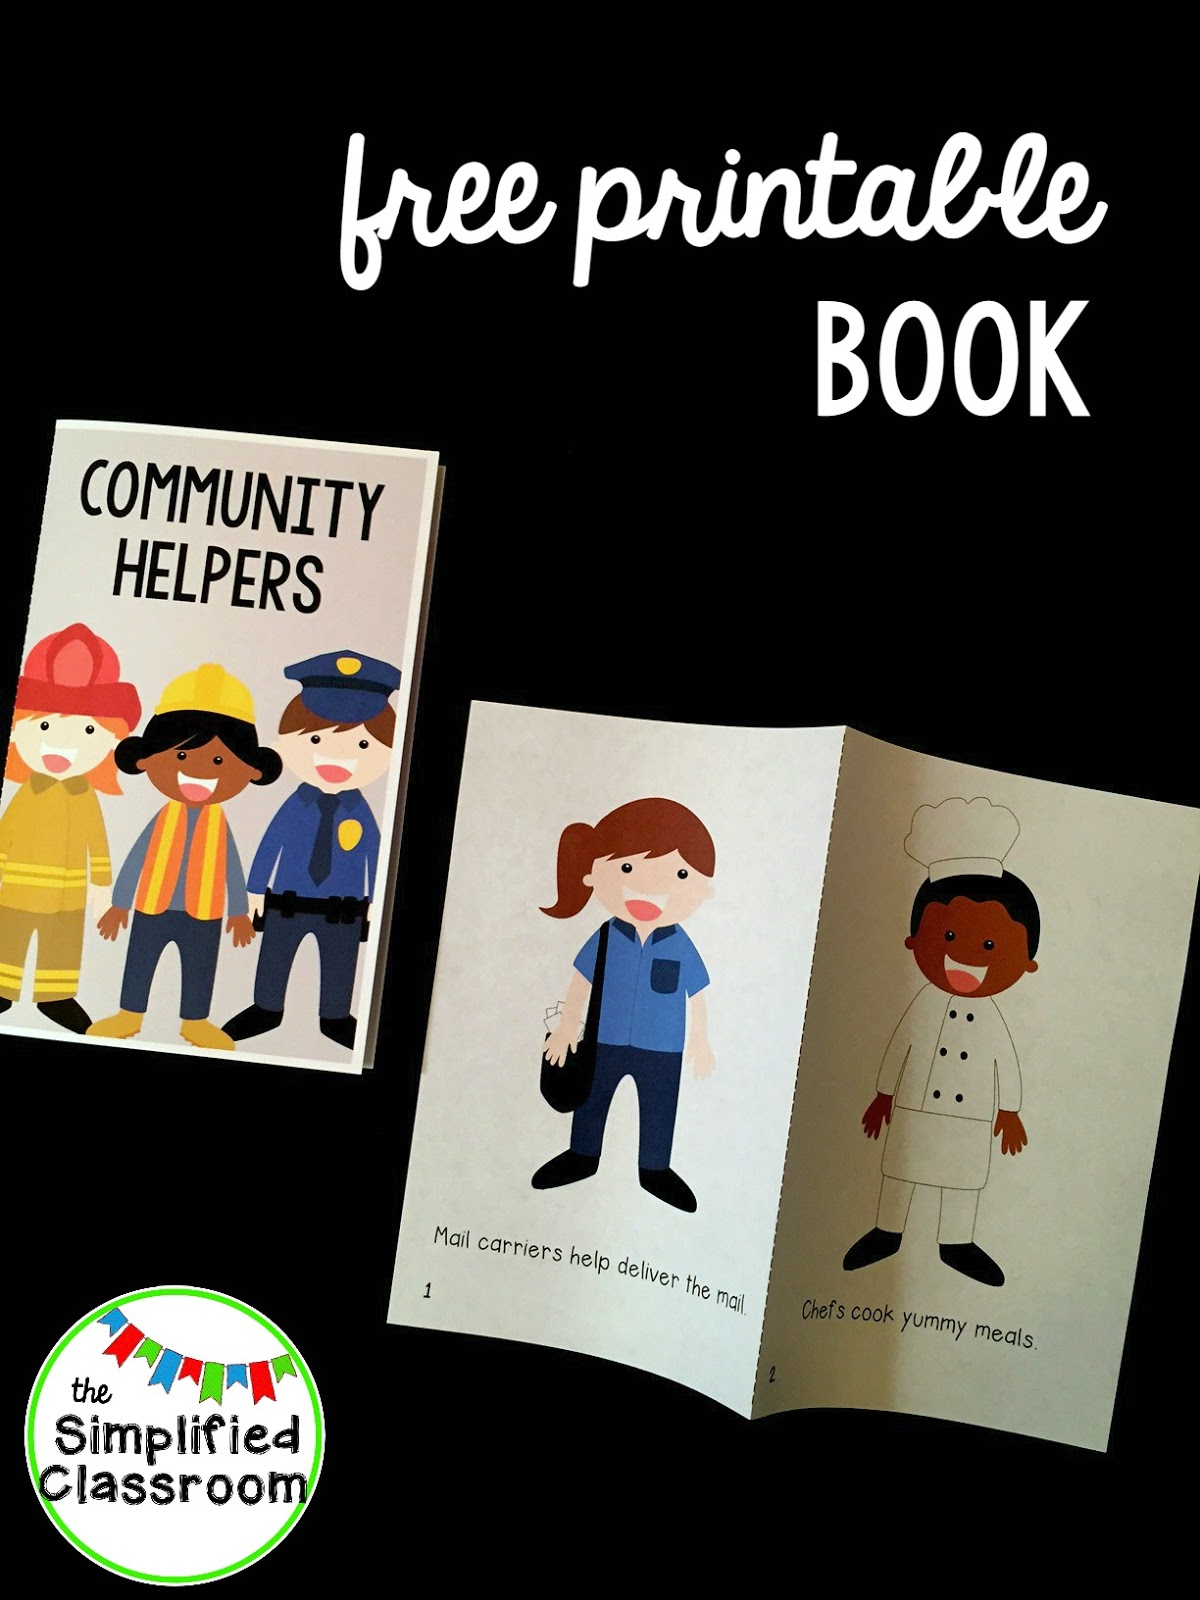 The Simplified Classroom Community Helpers Easy Reader